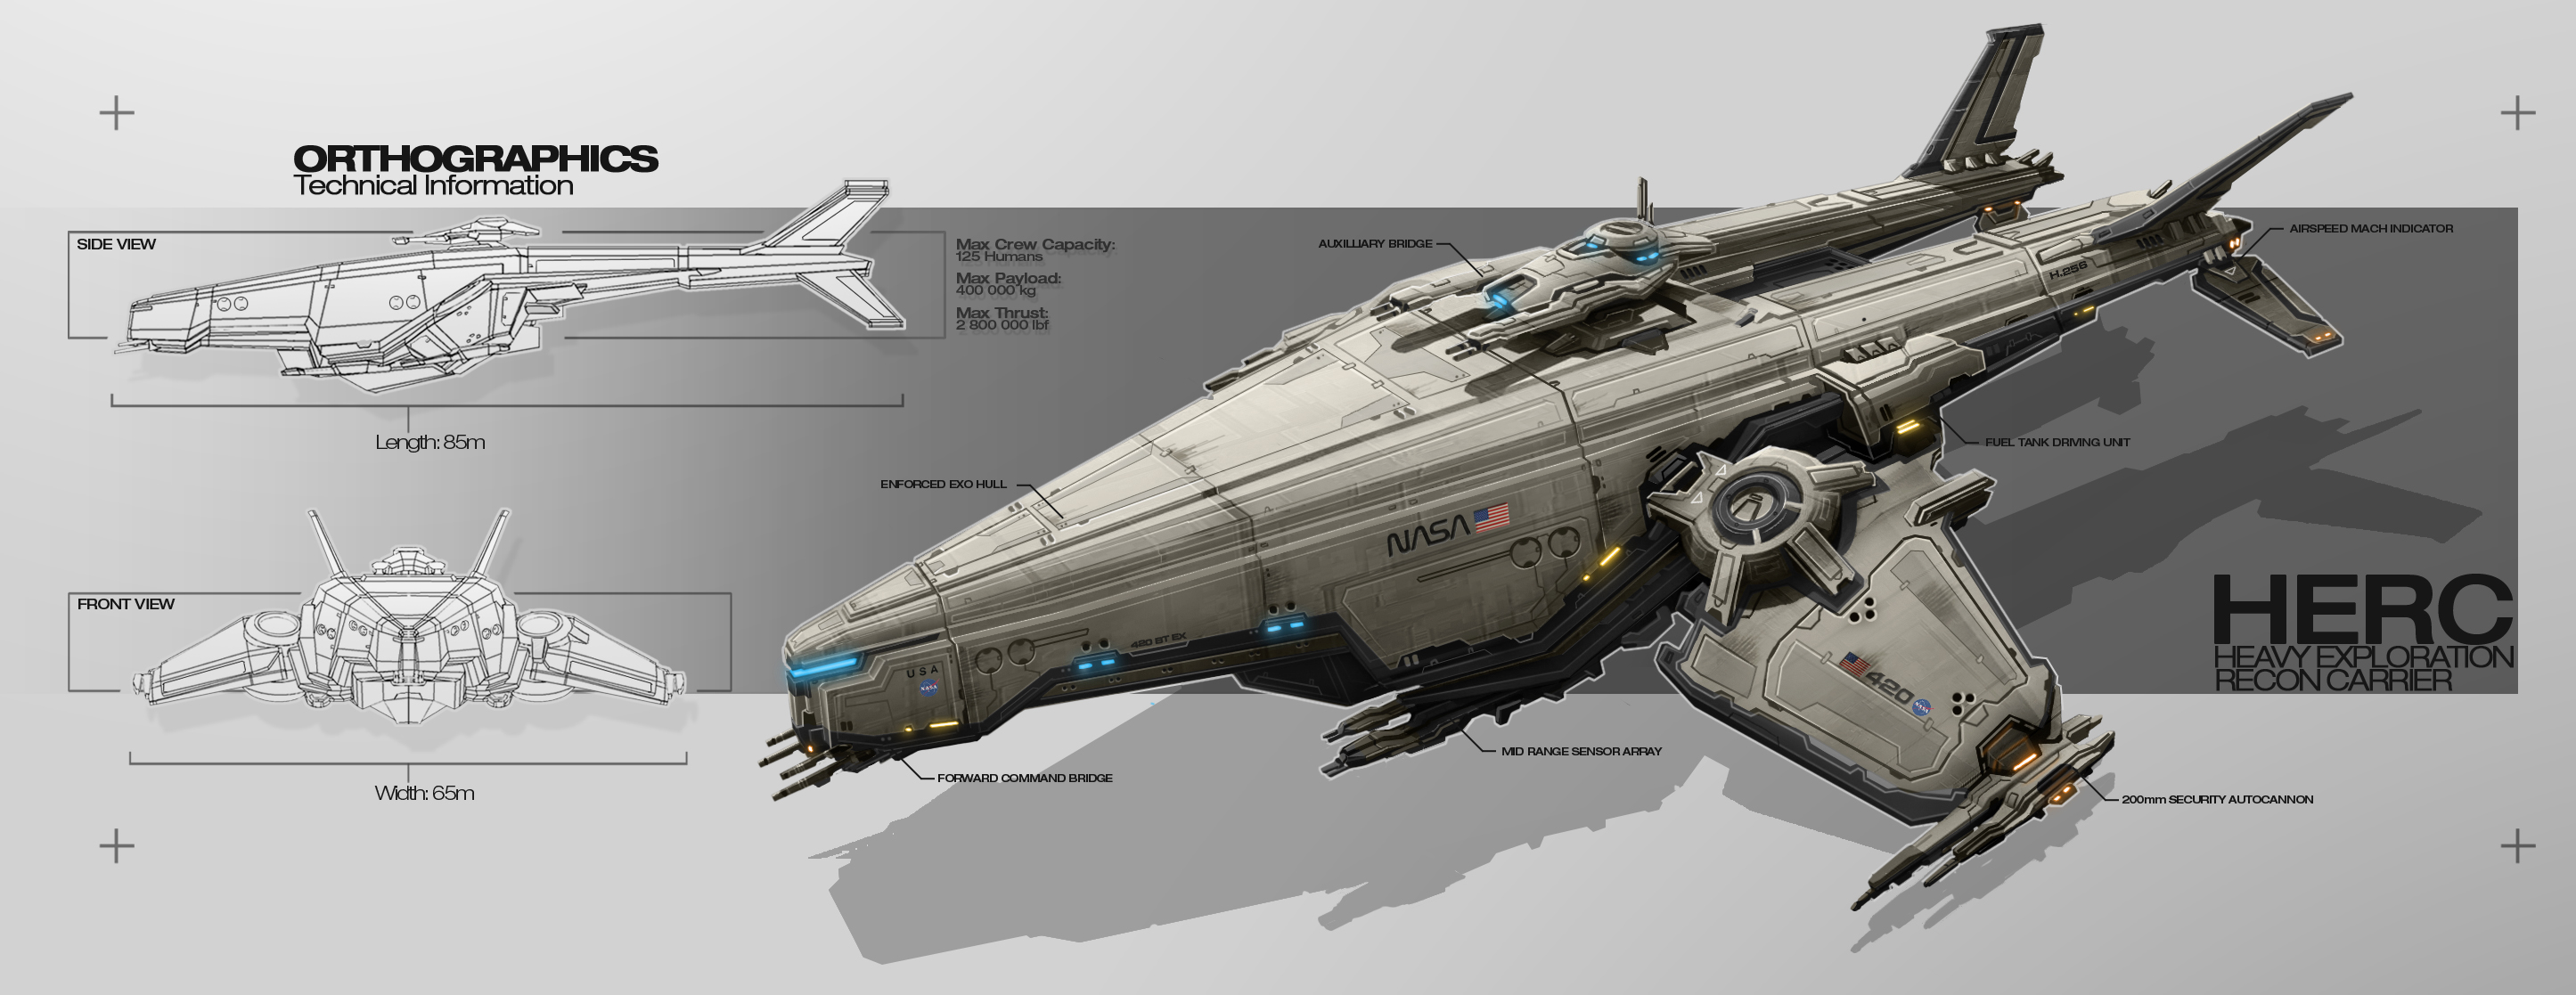 space_ship_01_by_astrokevin-d51rlvj.jpg